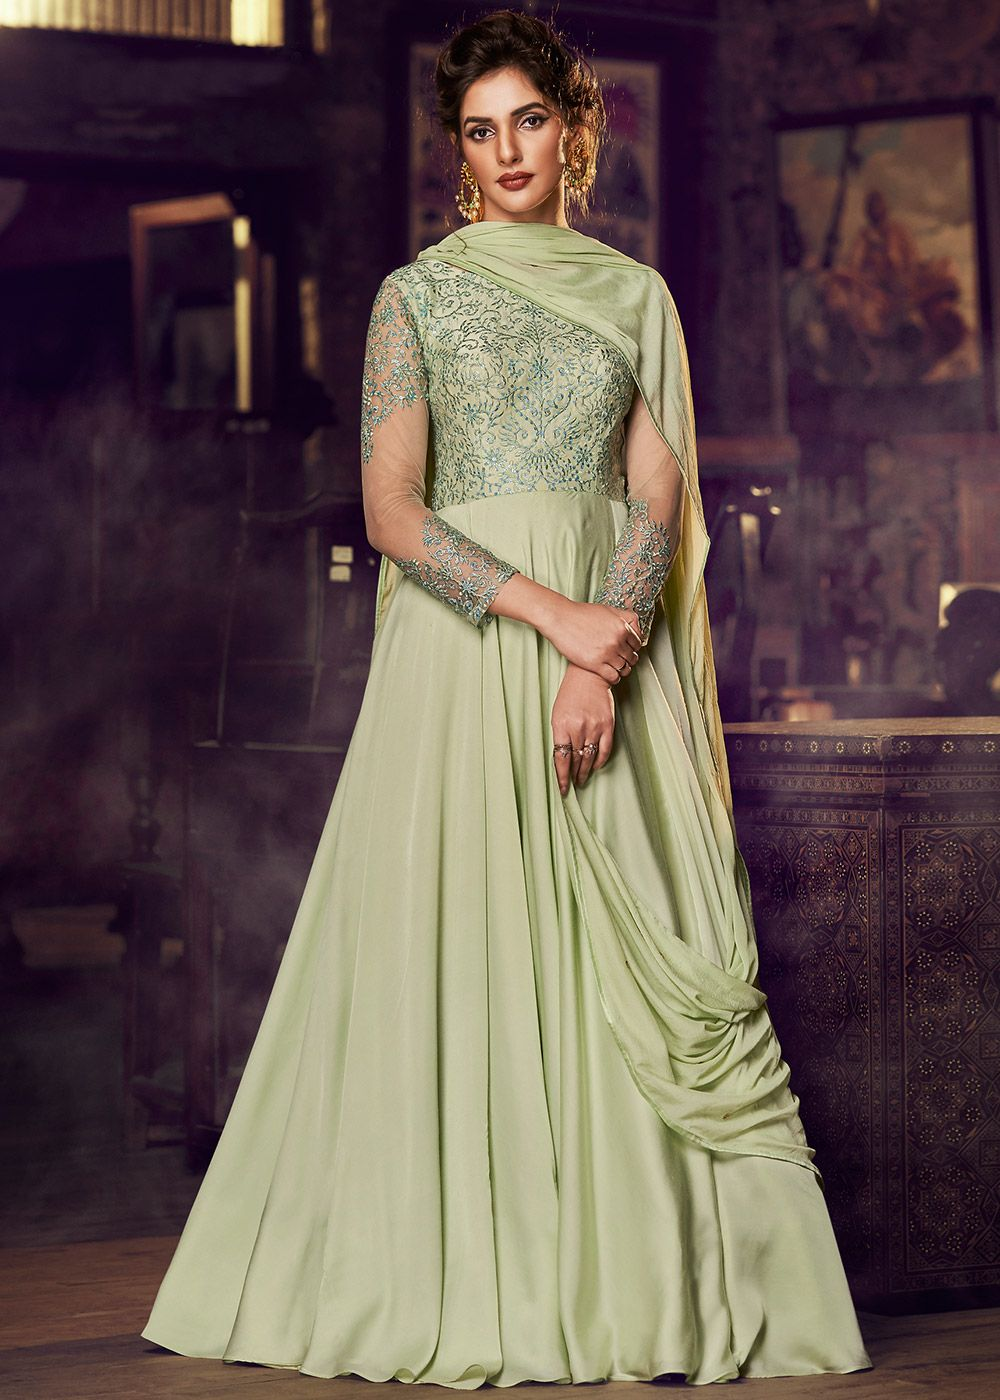 Readymade Green Embroidered Gown Style Suit With Dupatta